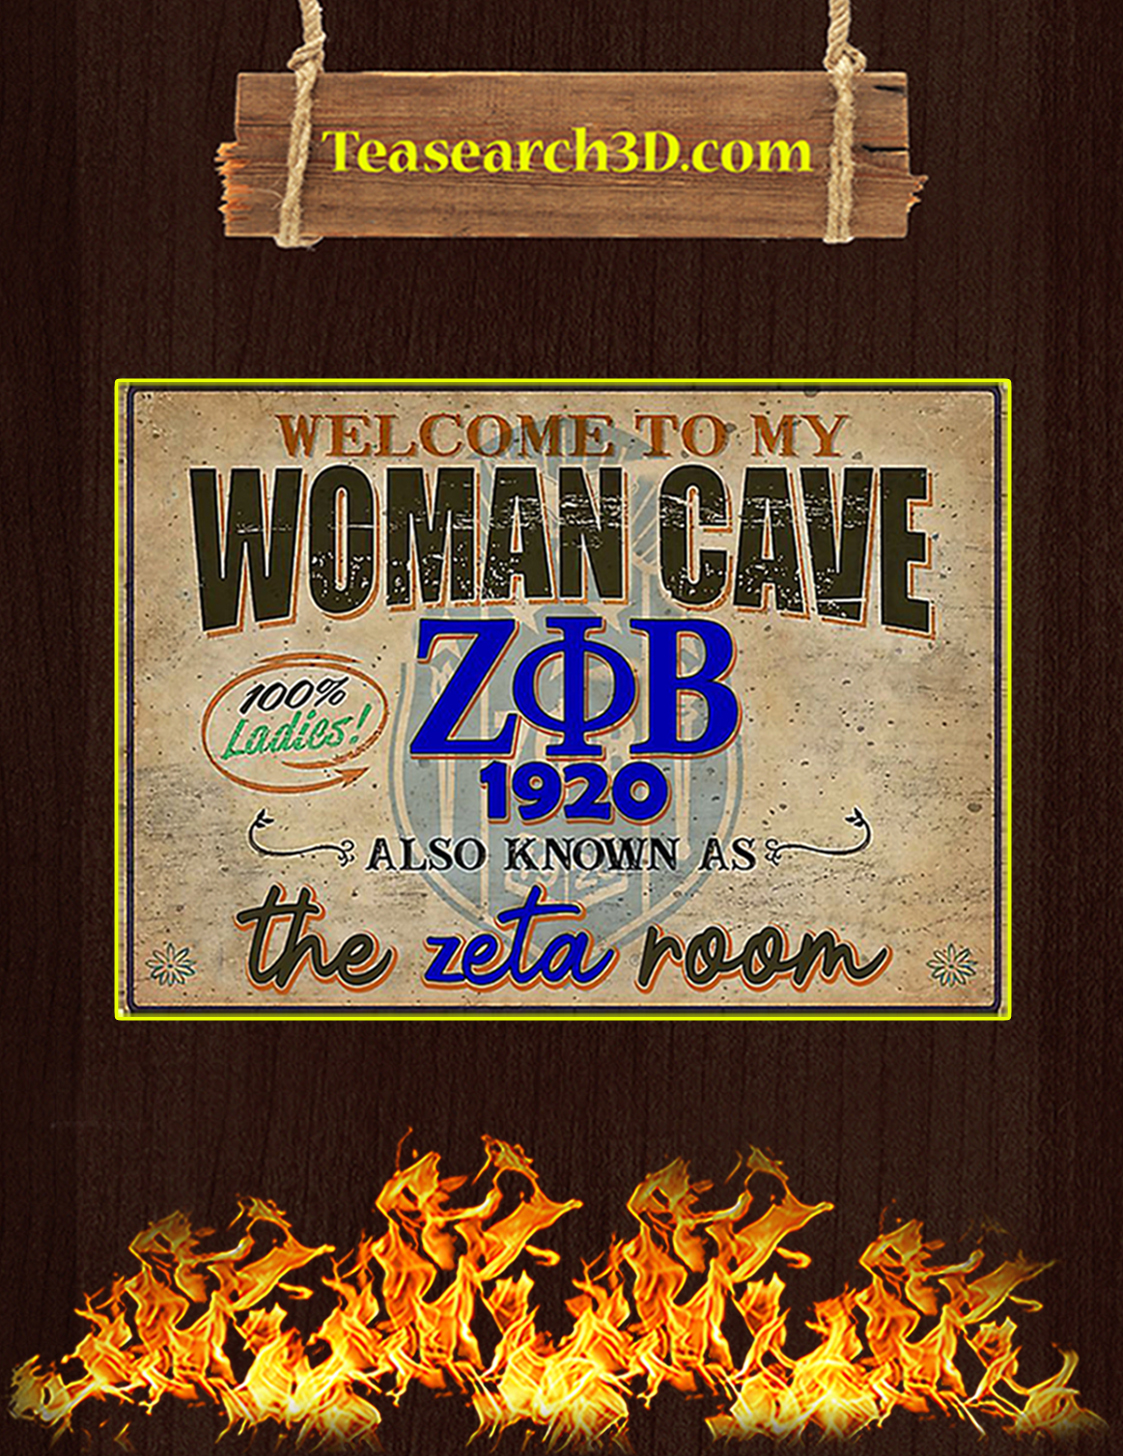 Welcome to my woman cave zeta phi beta 1920 poster A3